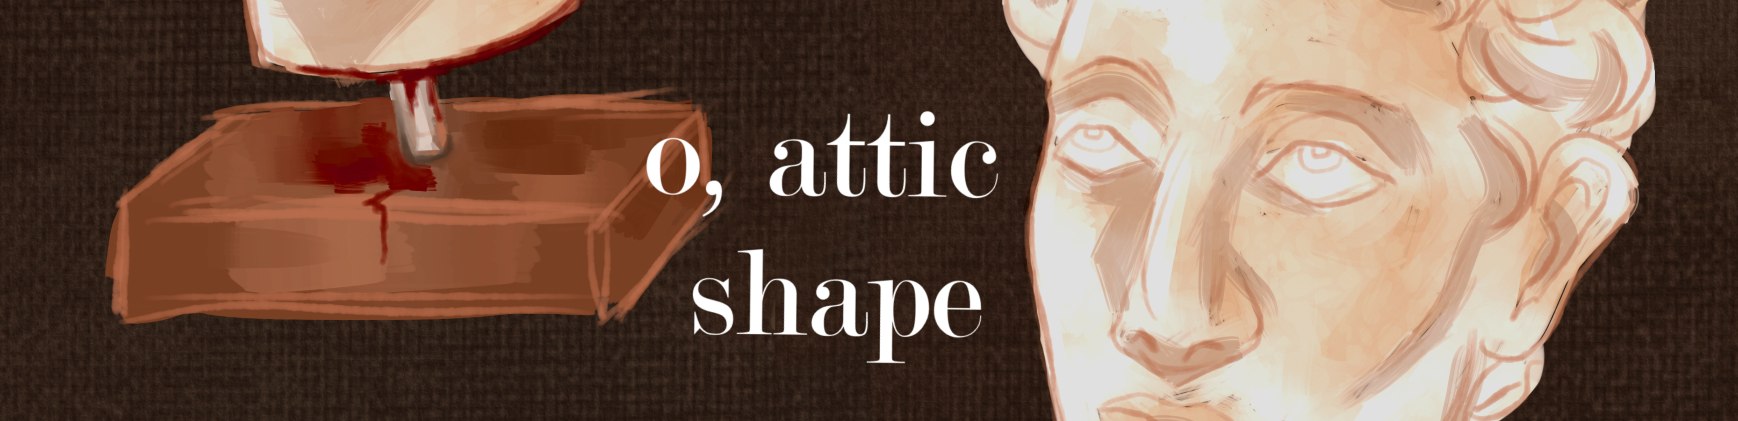 O, ATTIC SHAPE